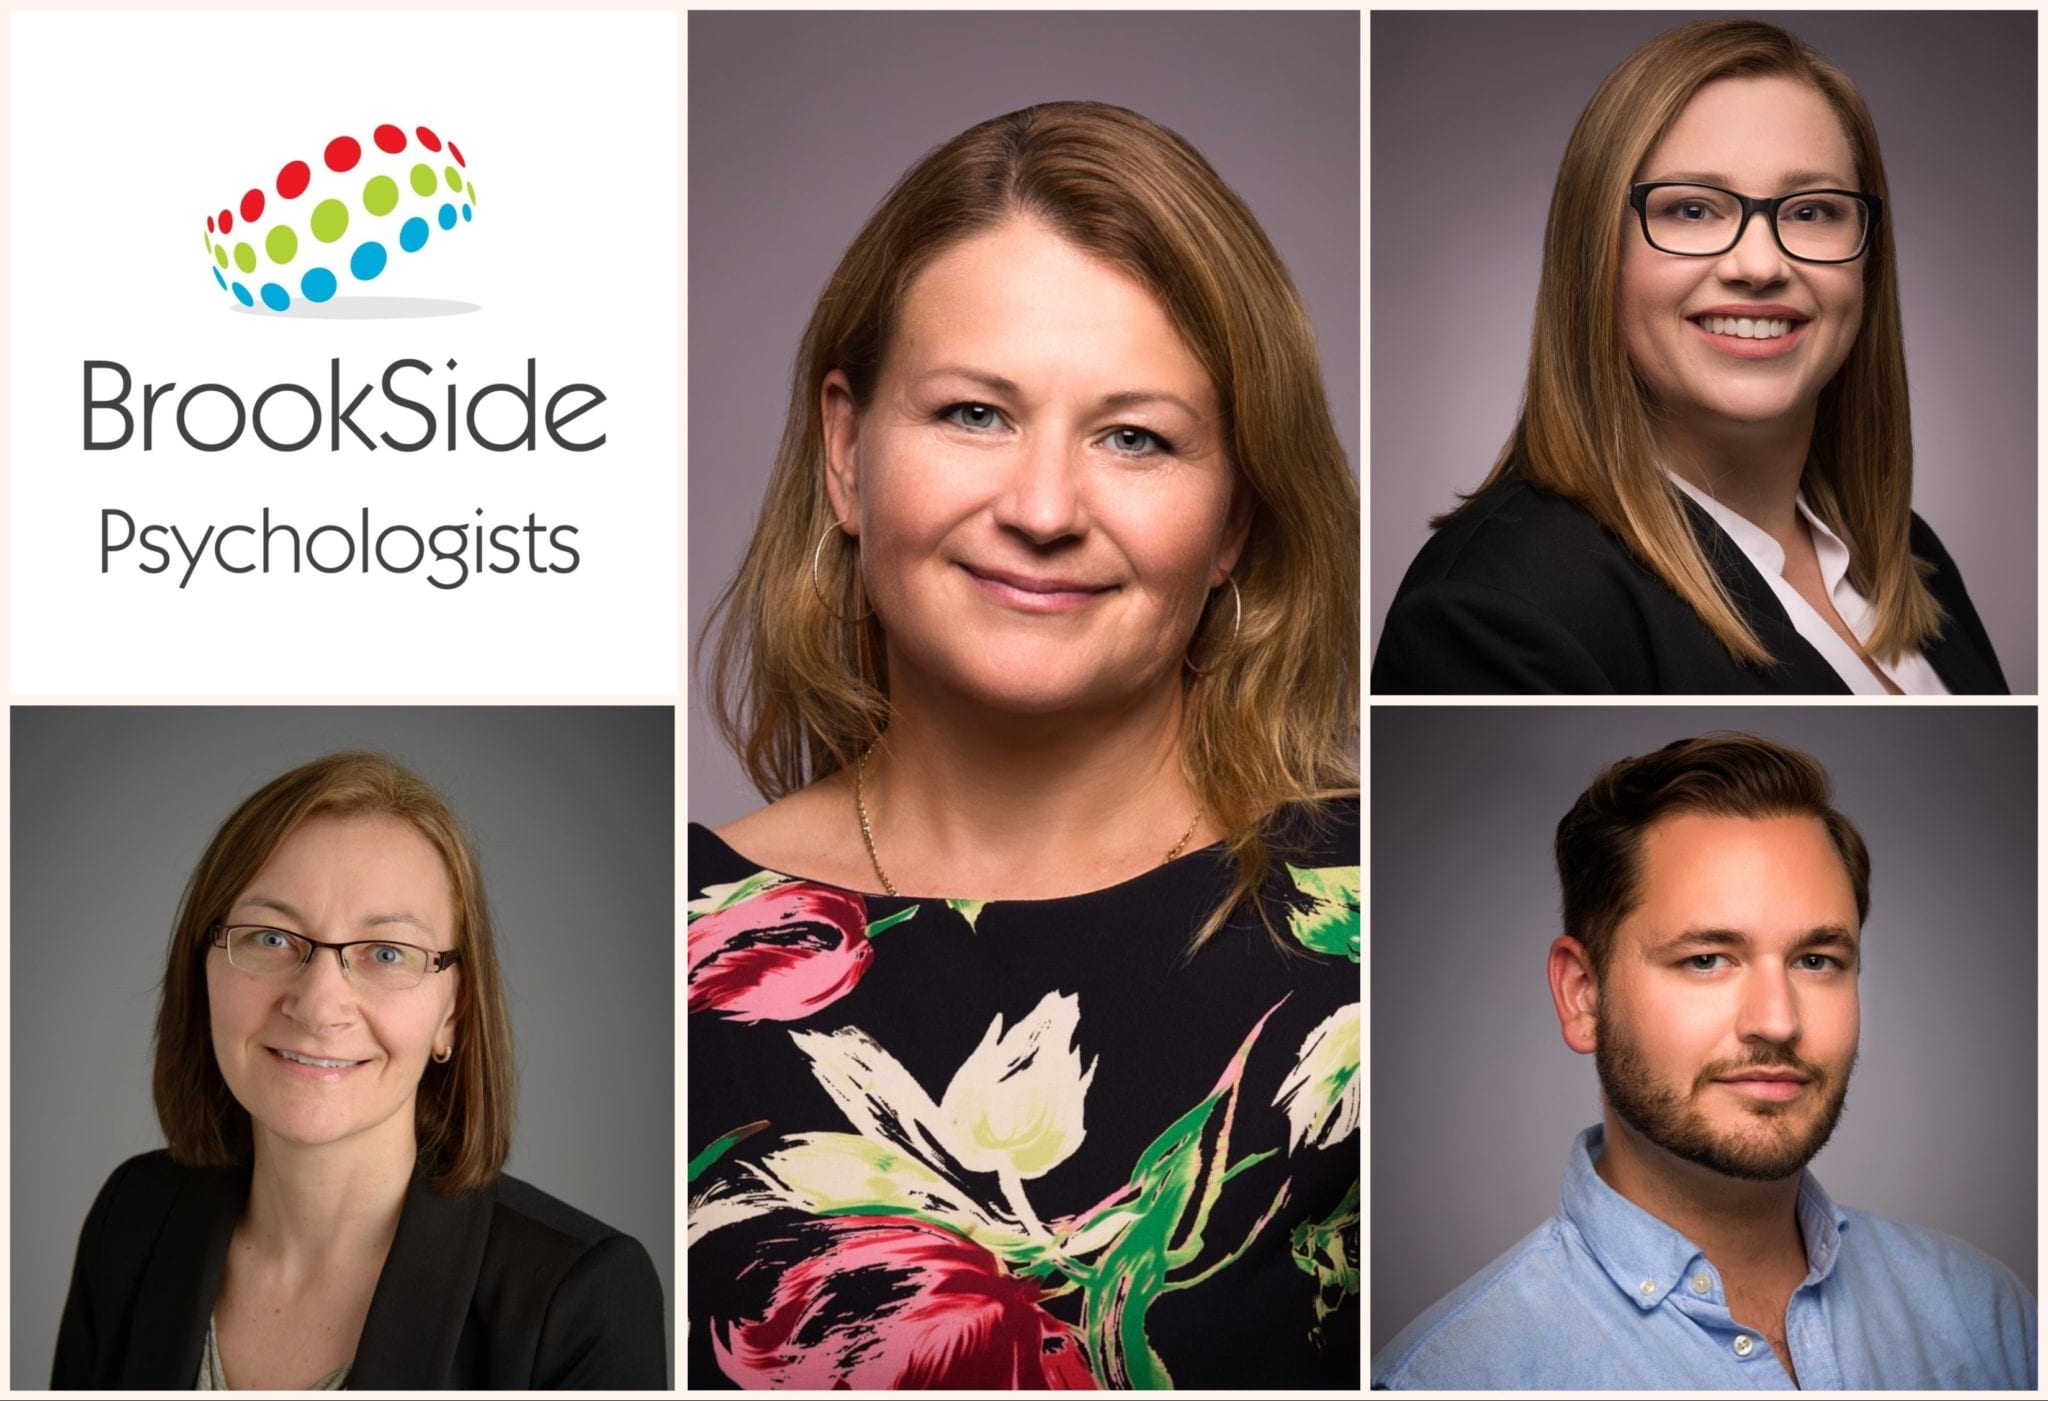 About Brookside Psychologists